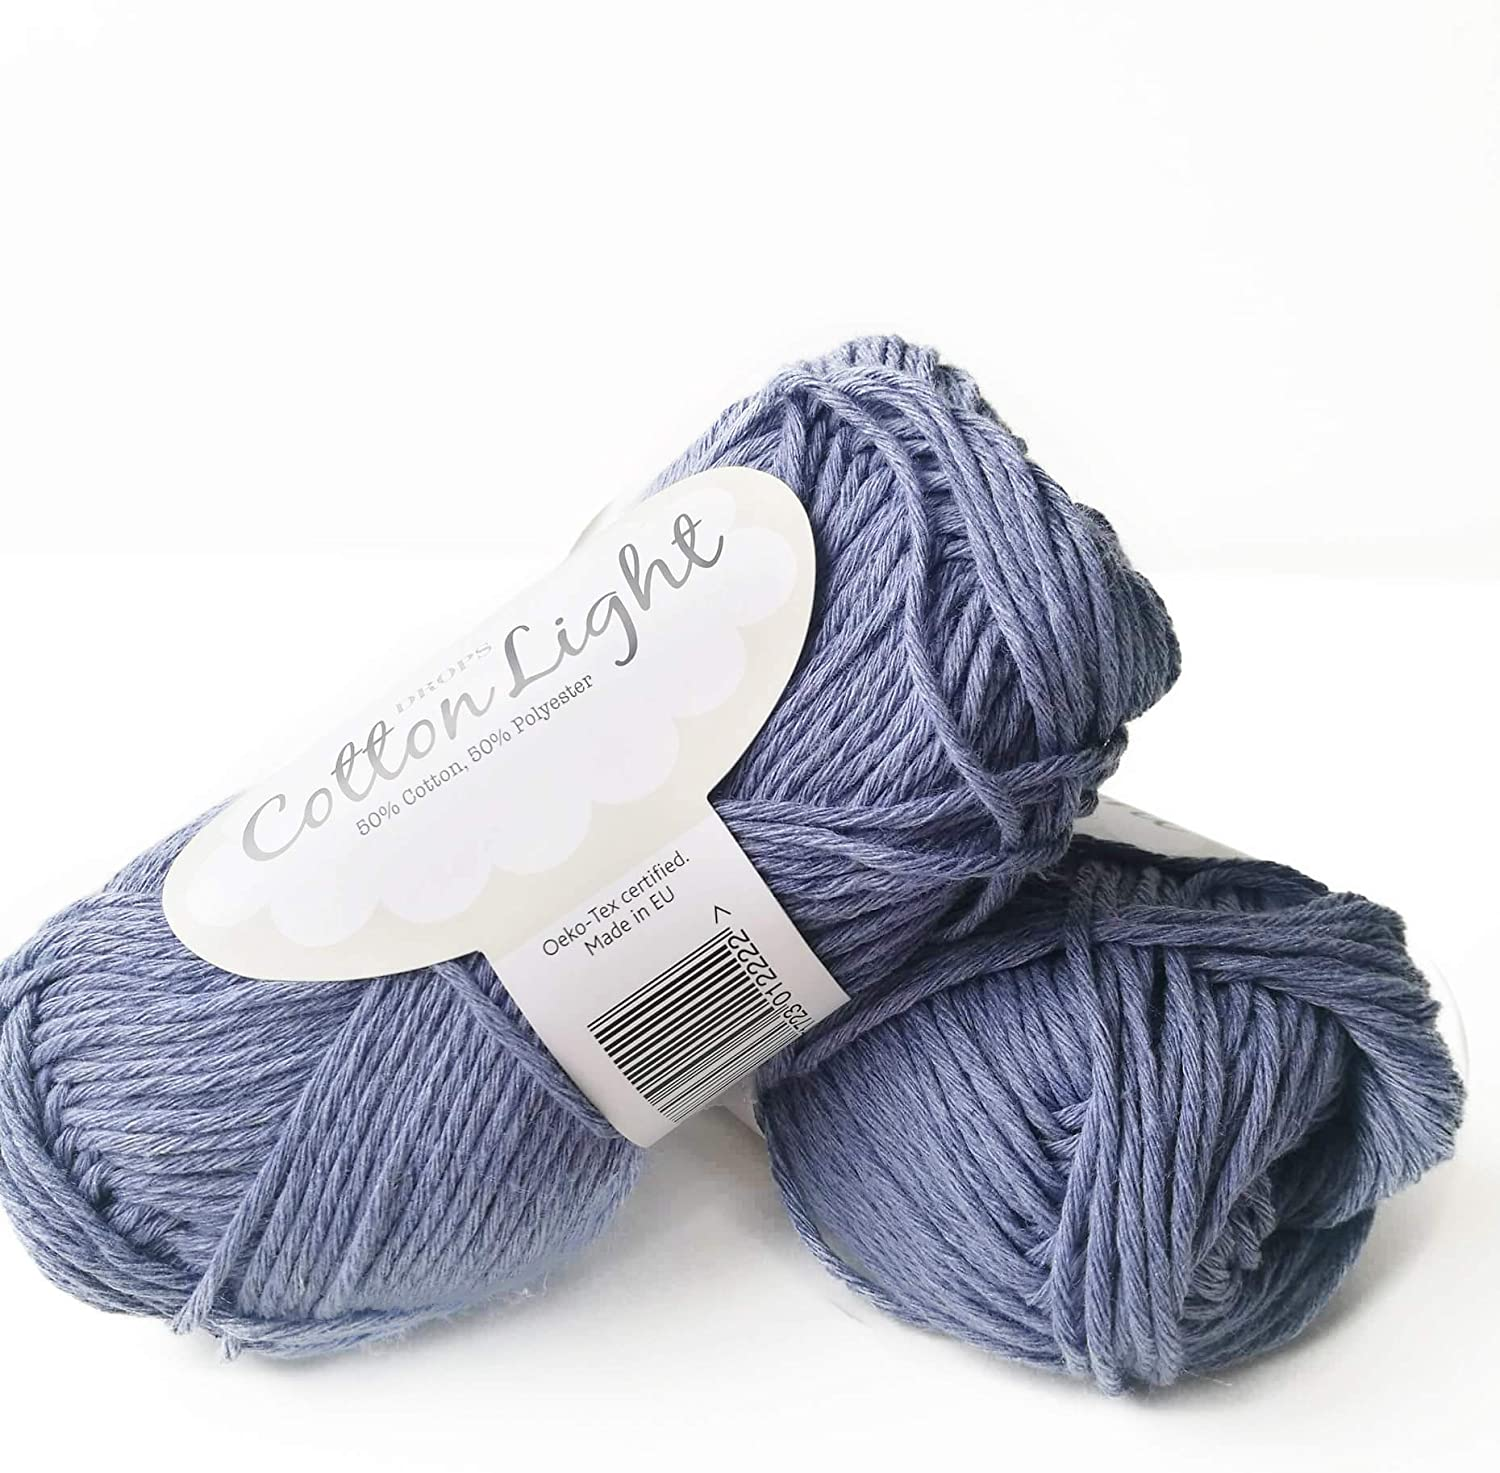 Cotton Blend Yarn for Knitting and Crocheting, 4 or Medium, Worsted, DK Weight, Drops Cotton Light, 1.8 oz 115 Yards per Ball (34 Light Jeans Blue)